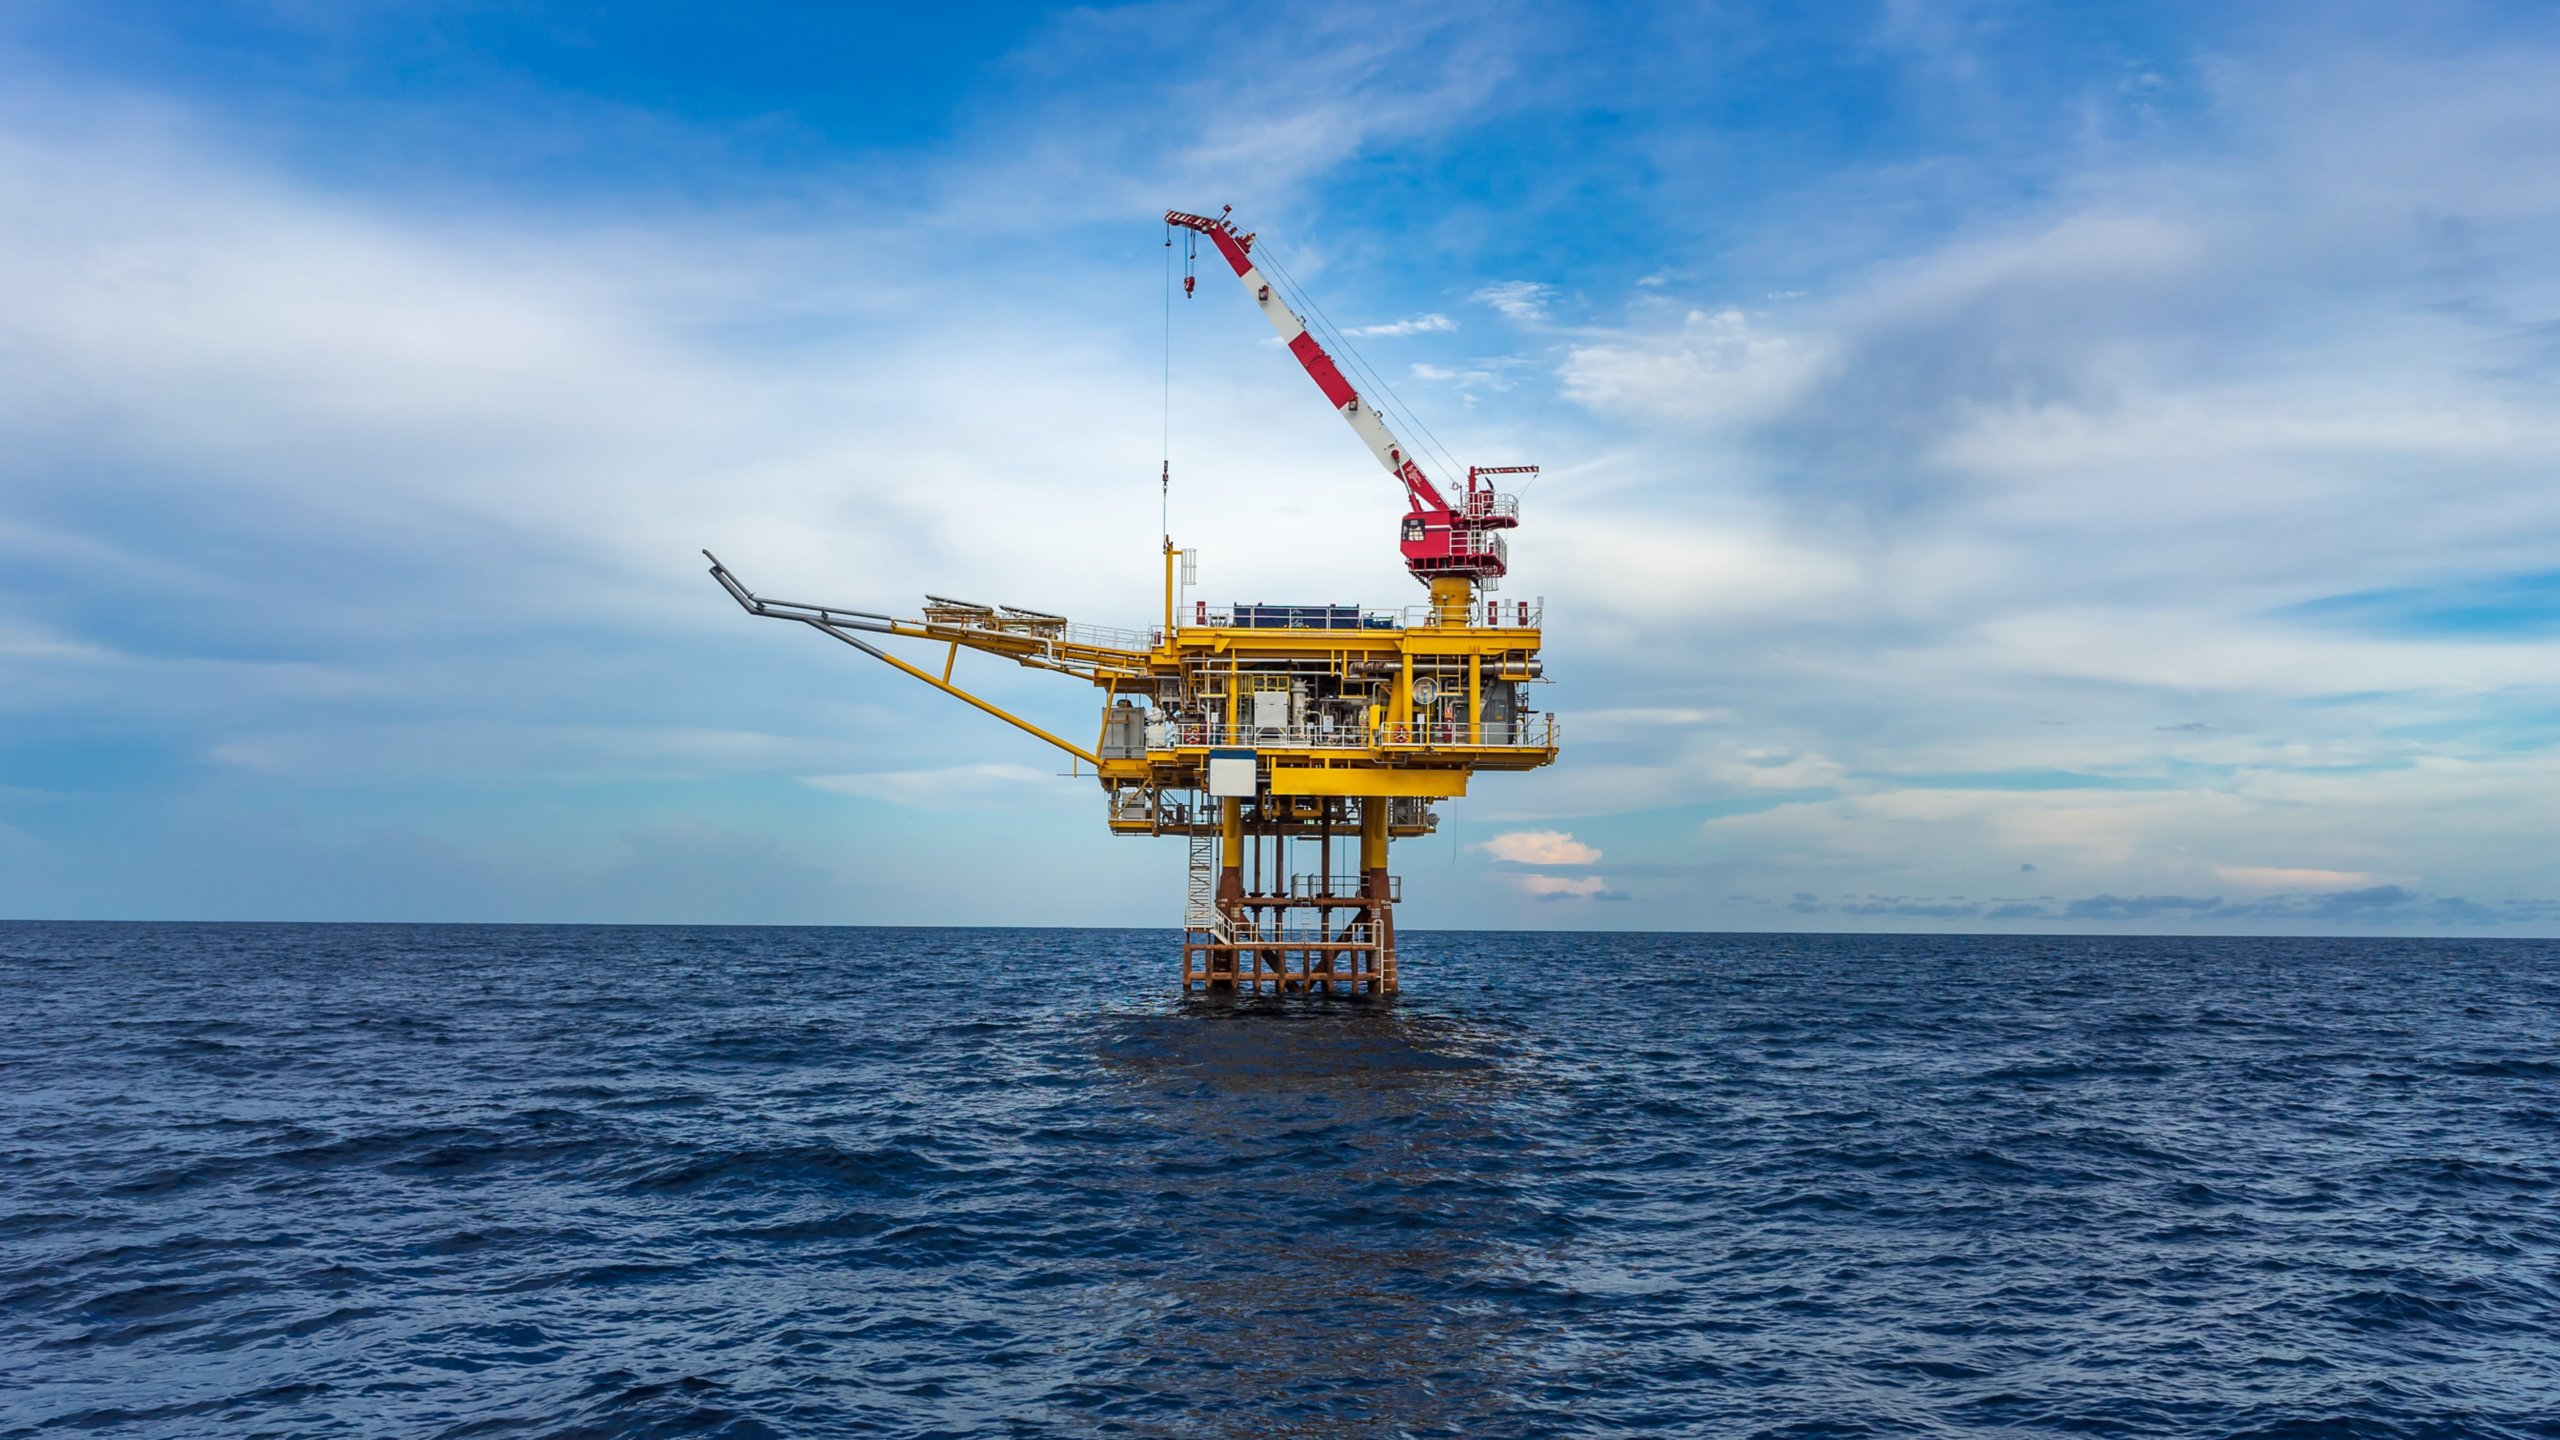 Offshore oil and gas wellhead remote platform with sea and blue sky background. Which produce raw gases and crude then sent to central processing facility far away. Oil and gas industry.